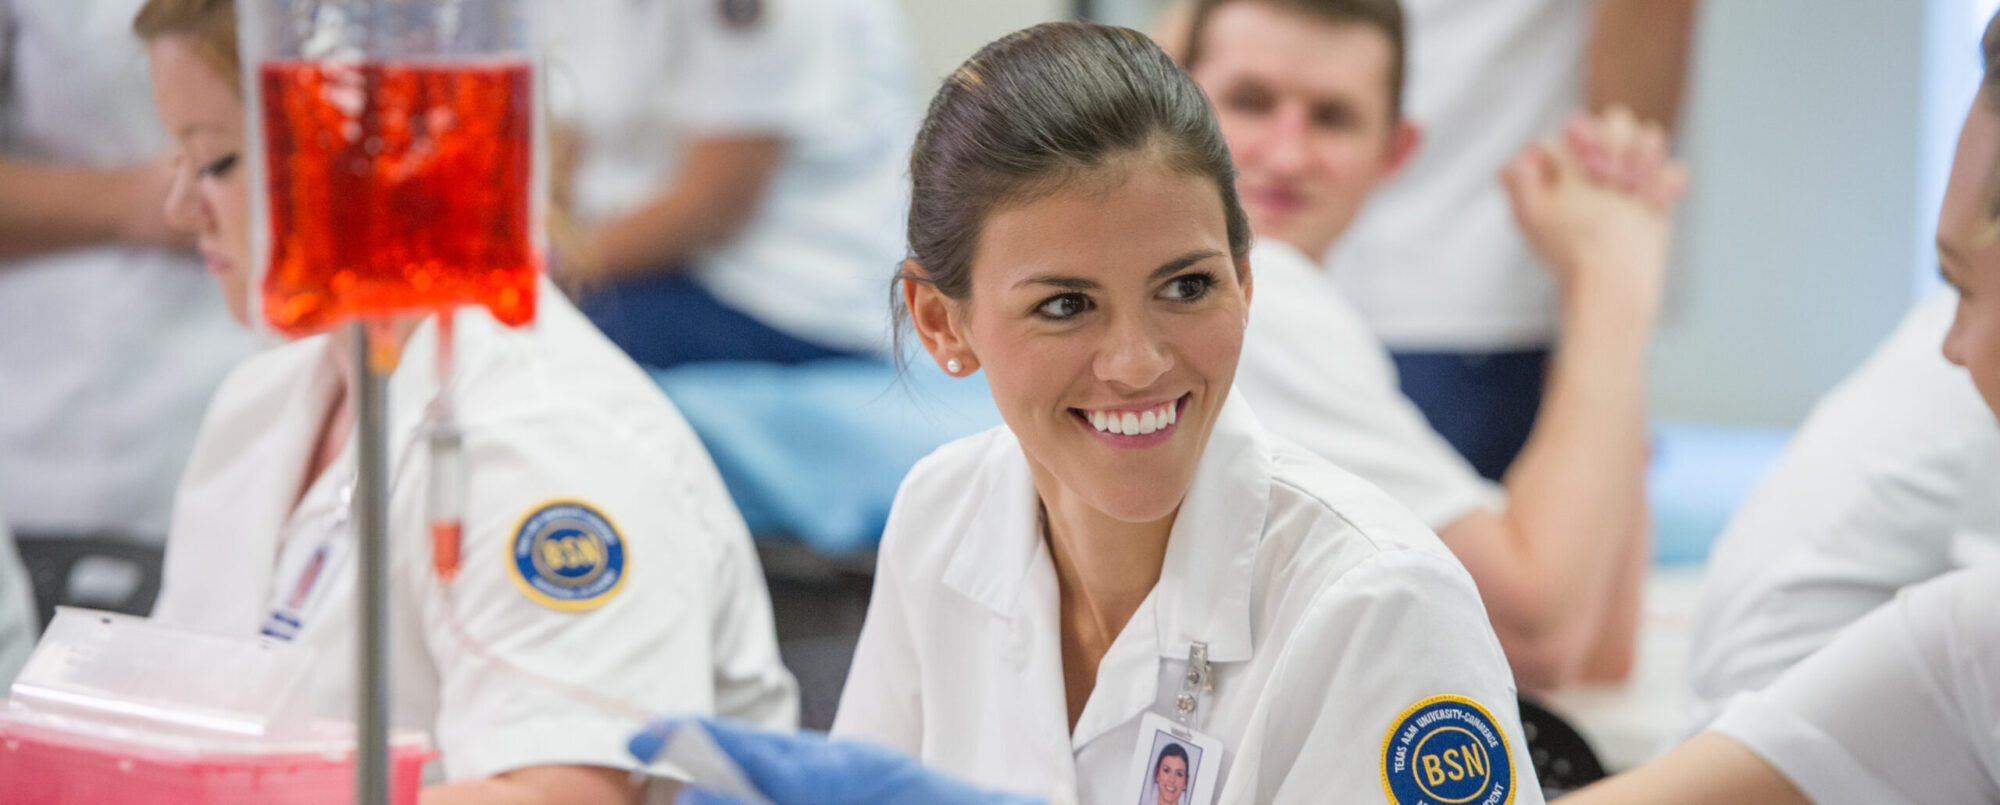 Nursing student in the lab with classmates.